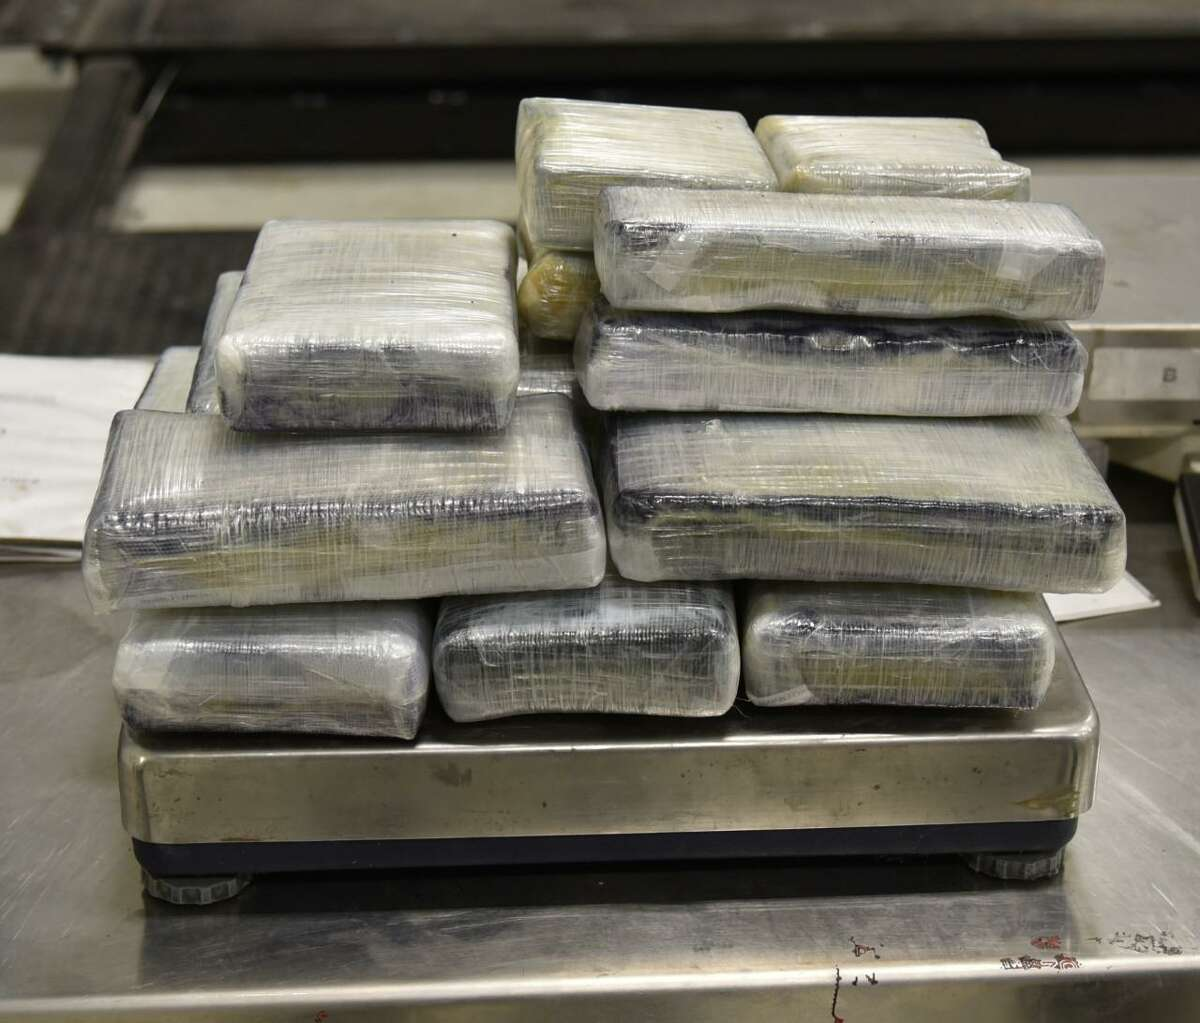 U.S. Customs and Border Protection officers seized these 37.61 pounds of cocaine on July 15 at the Juarez-Lincoln International Bridge. The cocaine had an estimated street value of $291,720. Three other seizures were also reported at local international bridges.